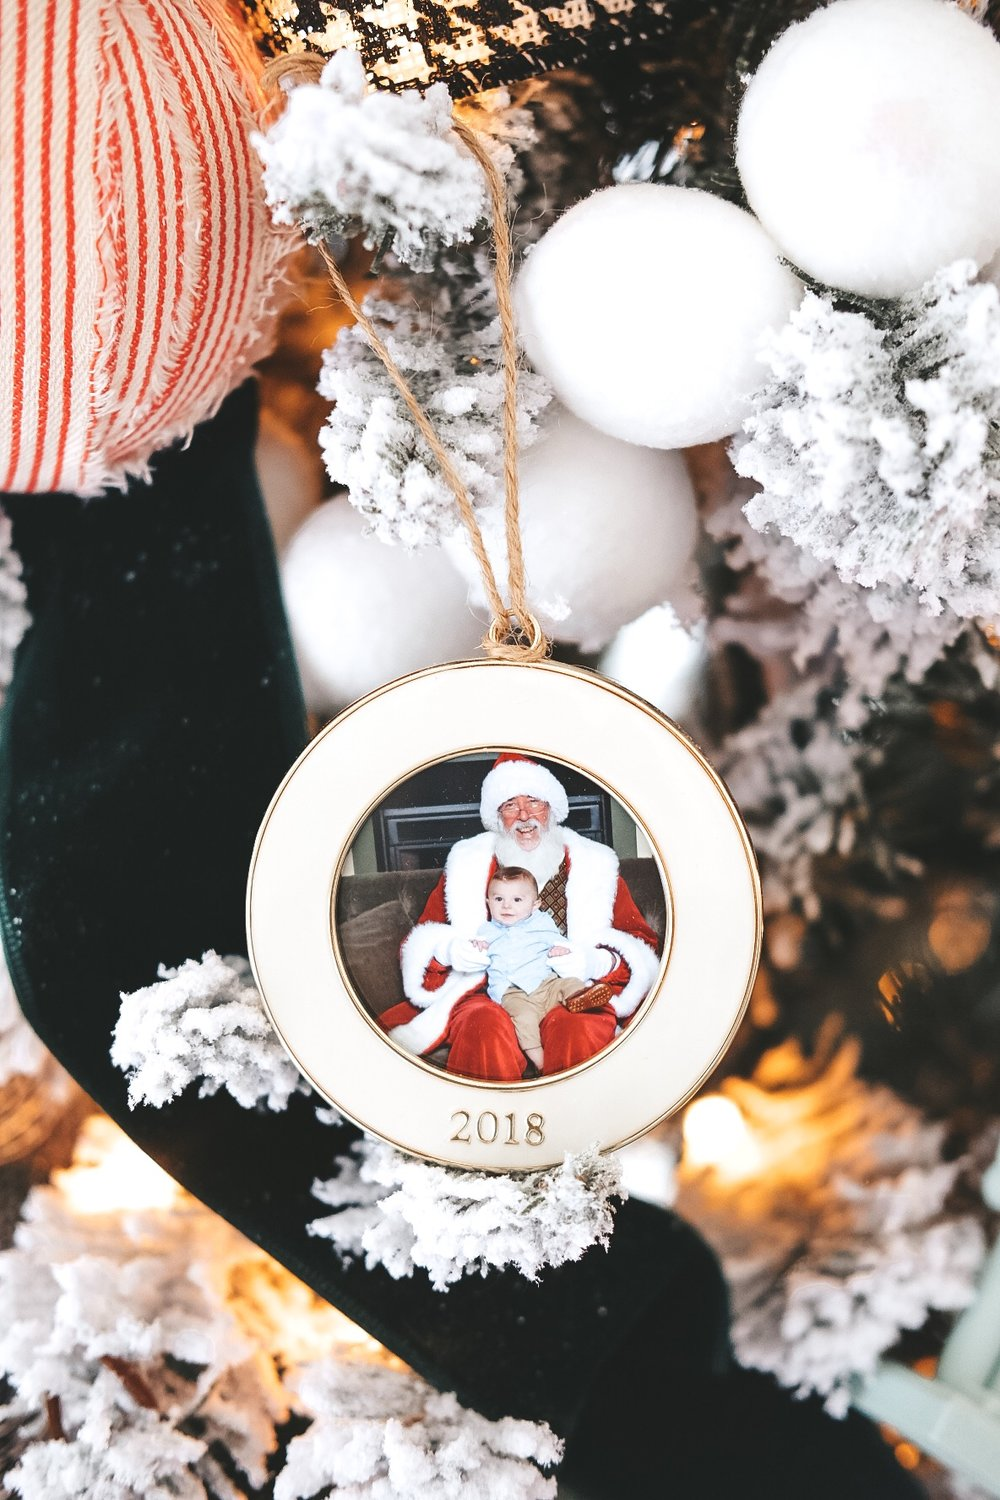 Ornament for yearly Santa photo.